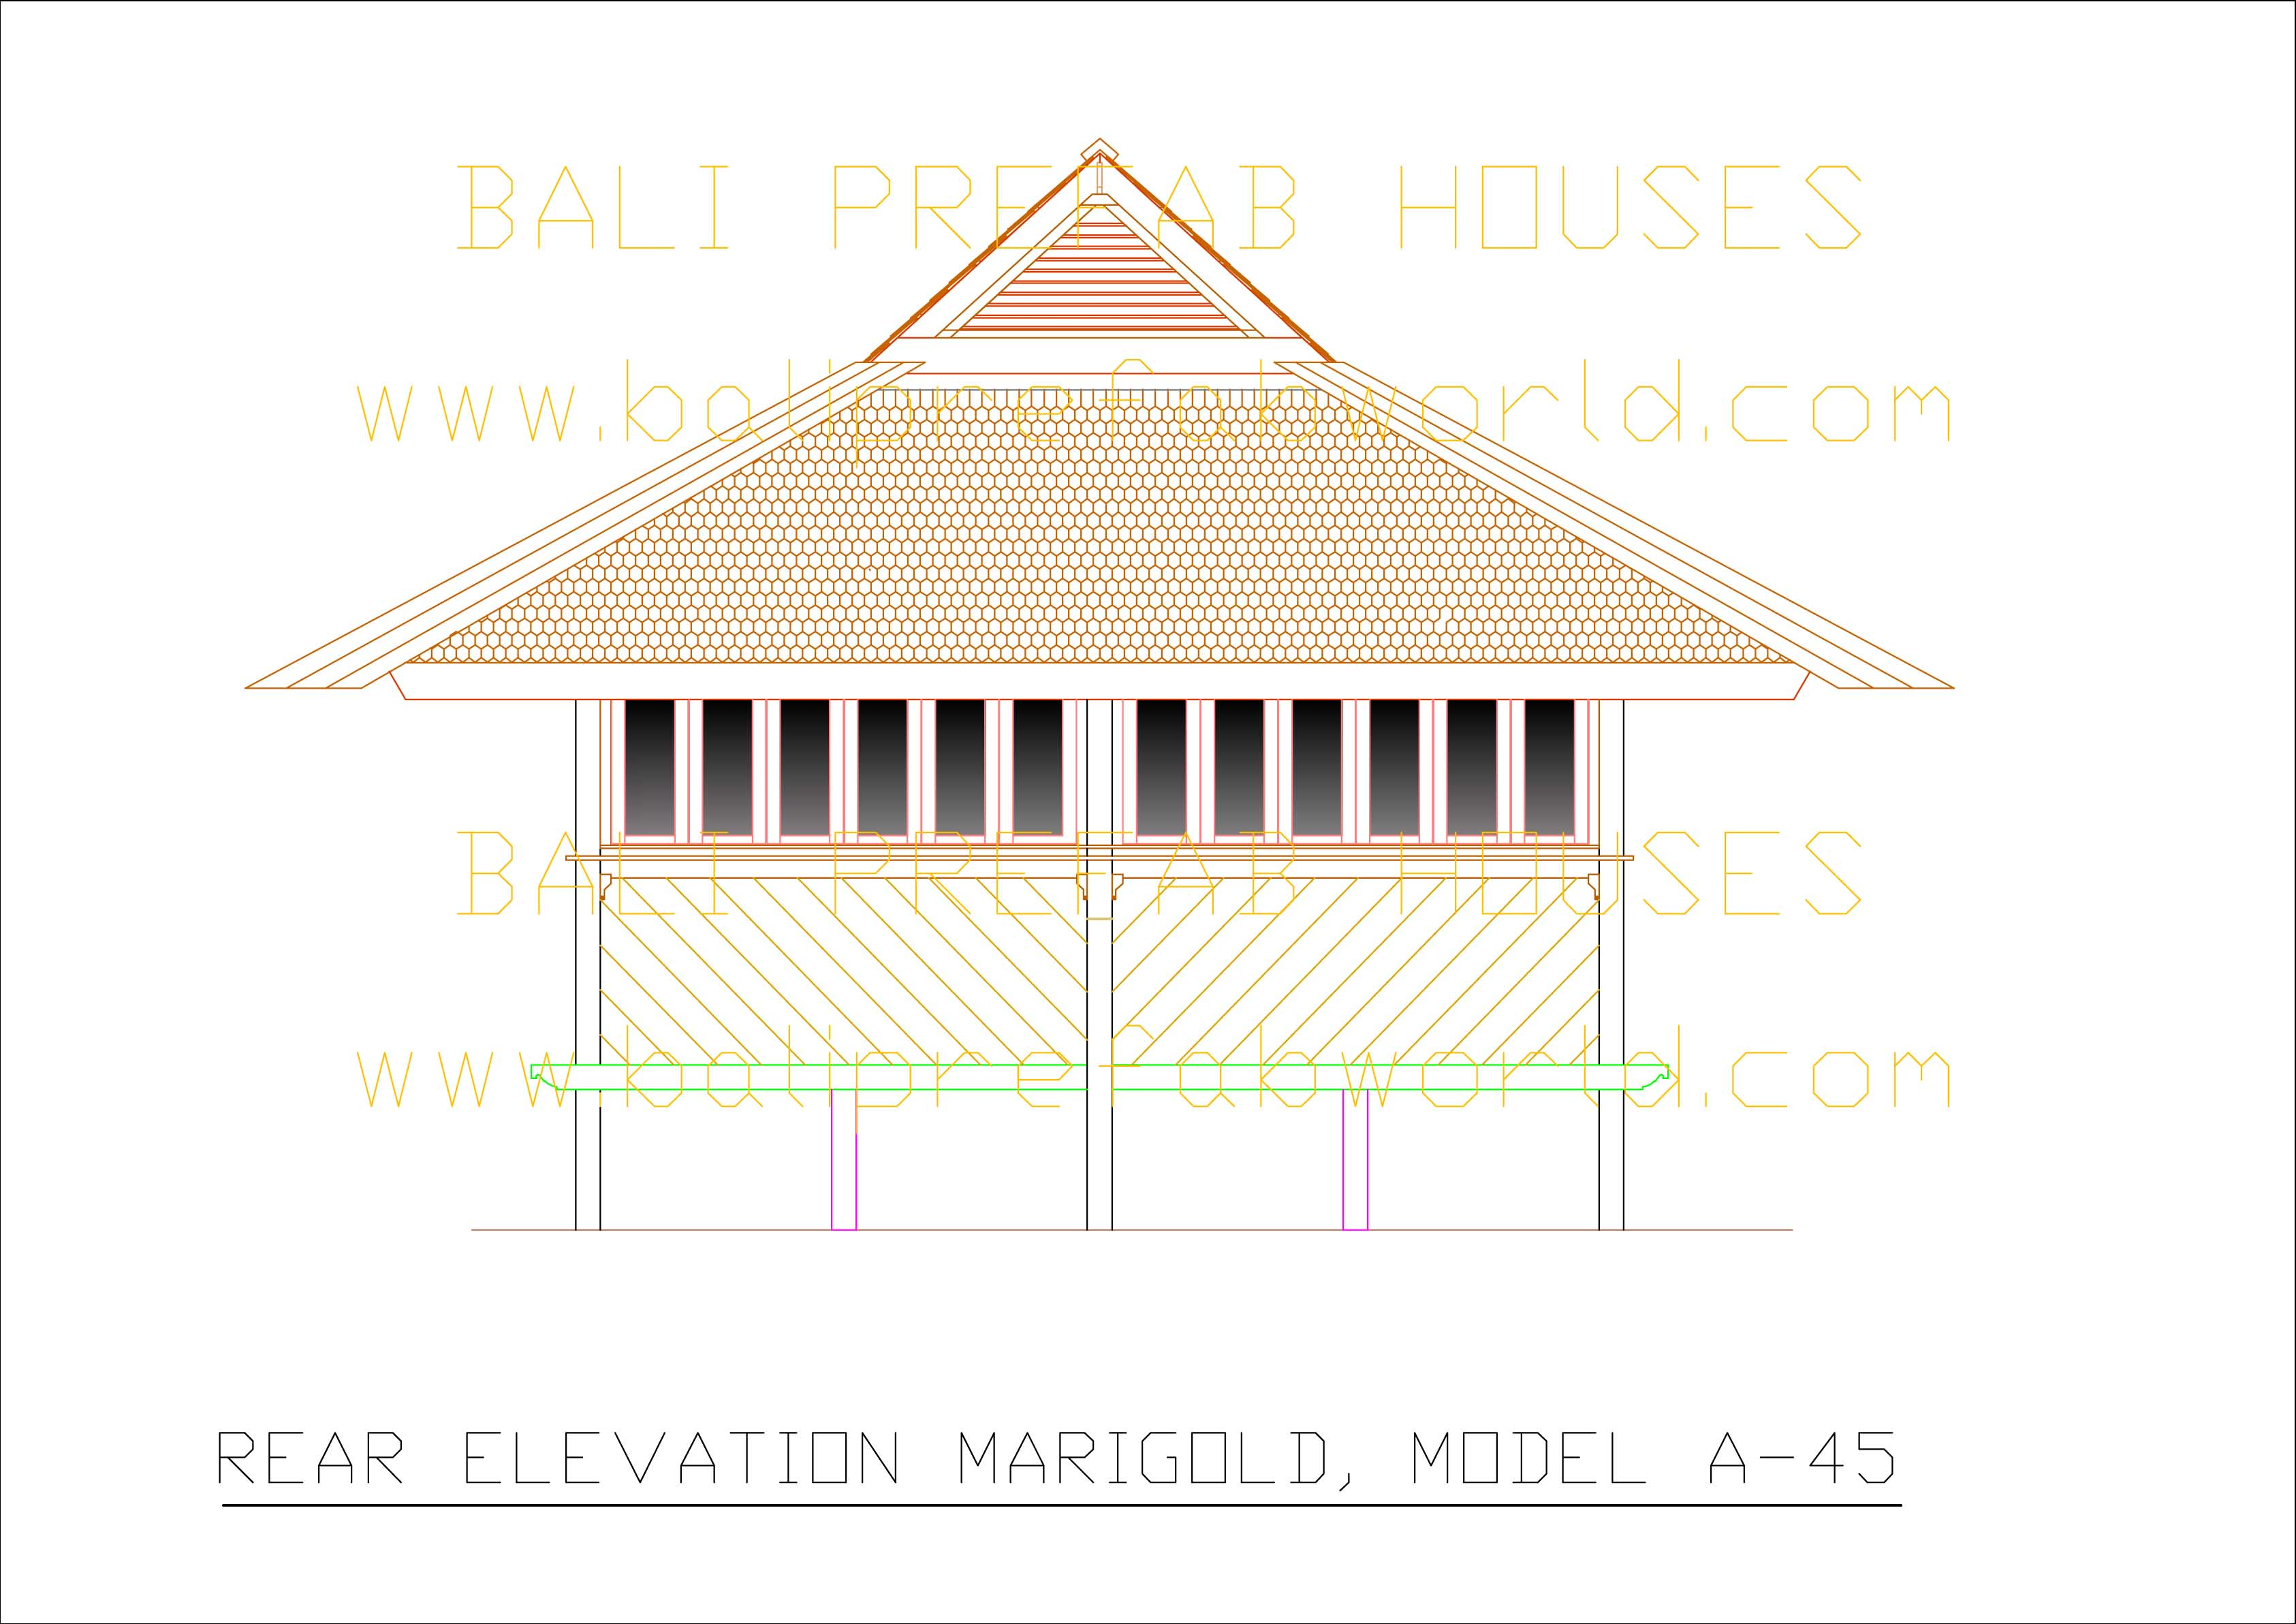 Marigold for What is rear elevation